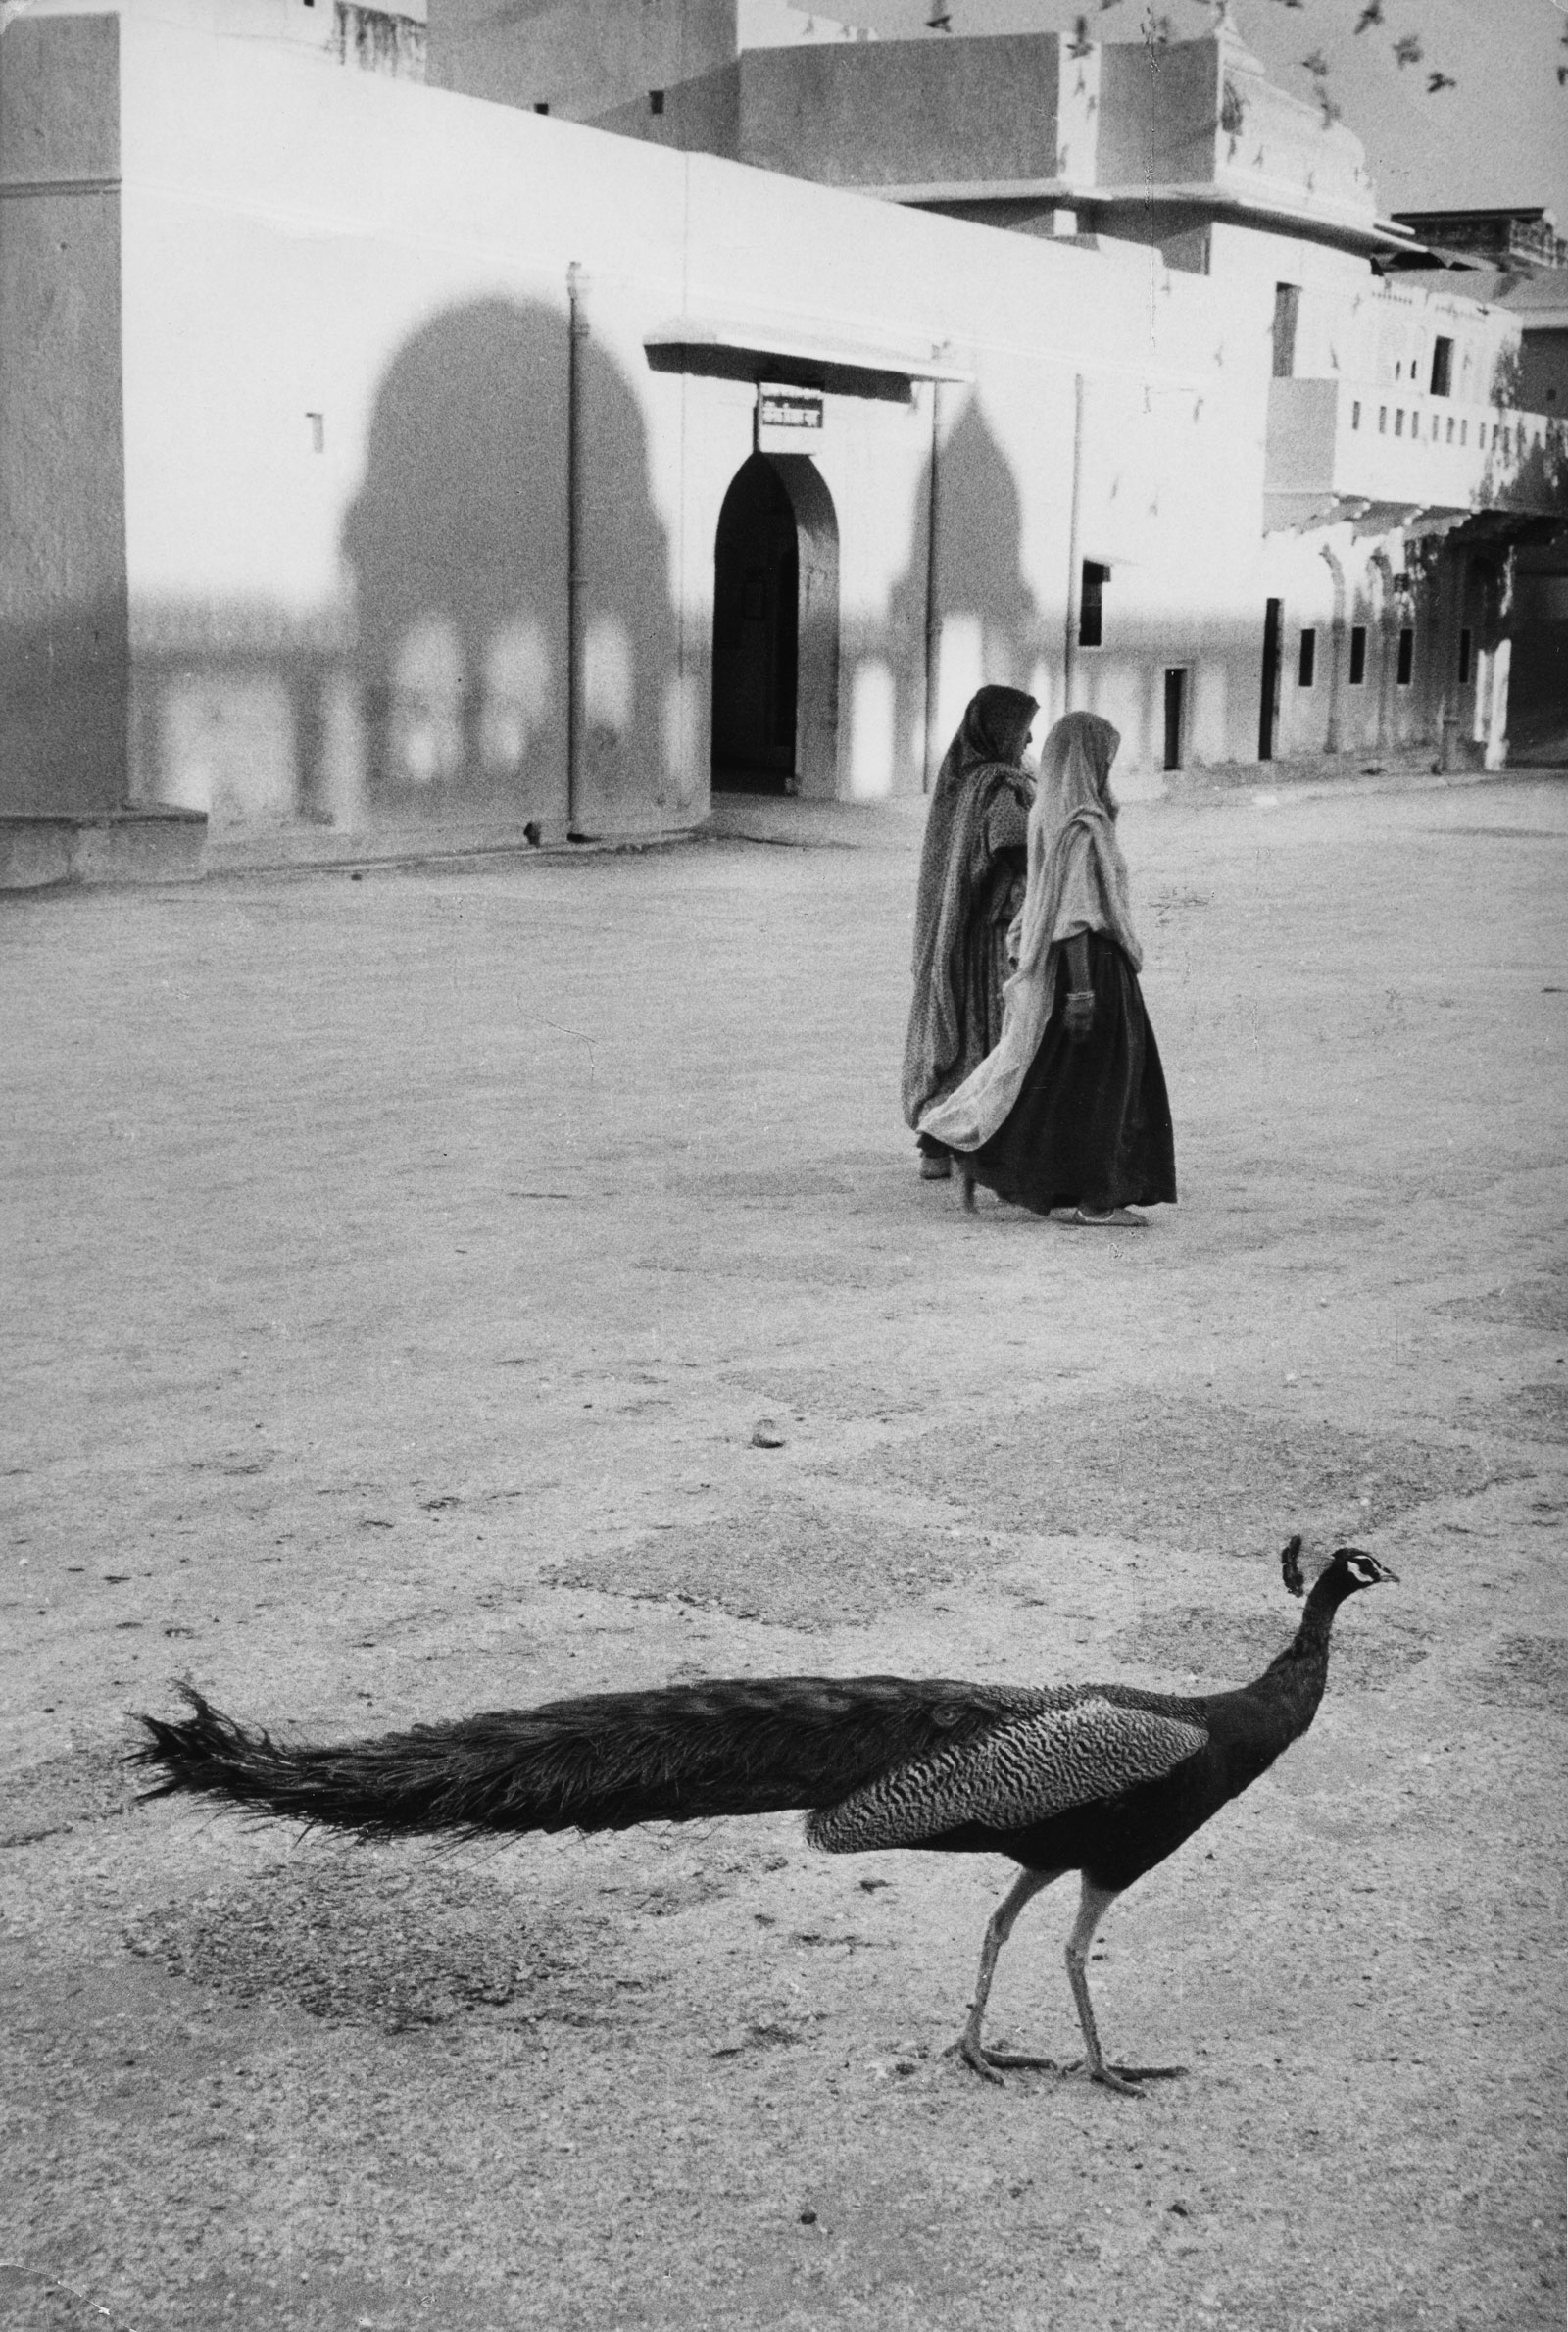 black and white image of a peacock, with two women and the shadows of buildings behind it